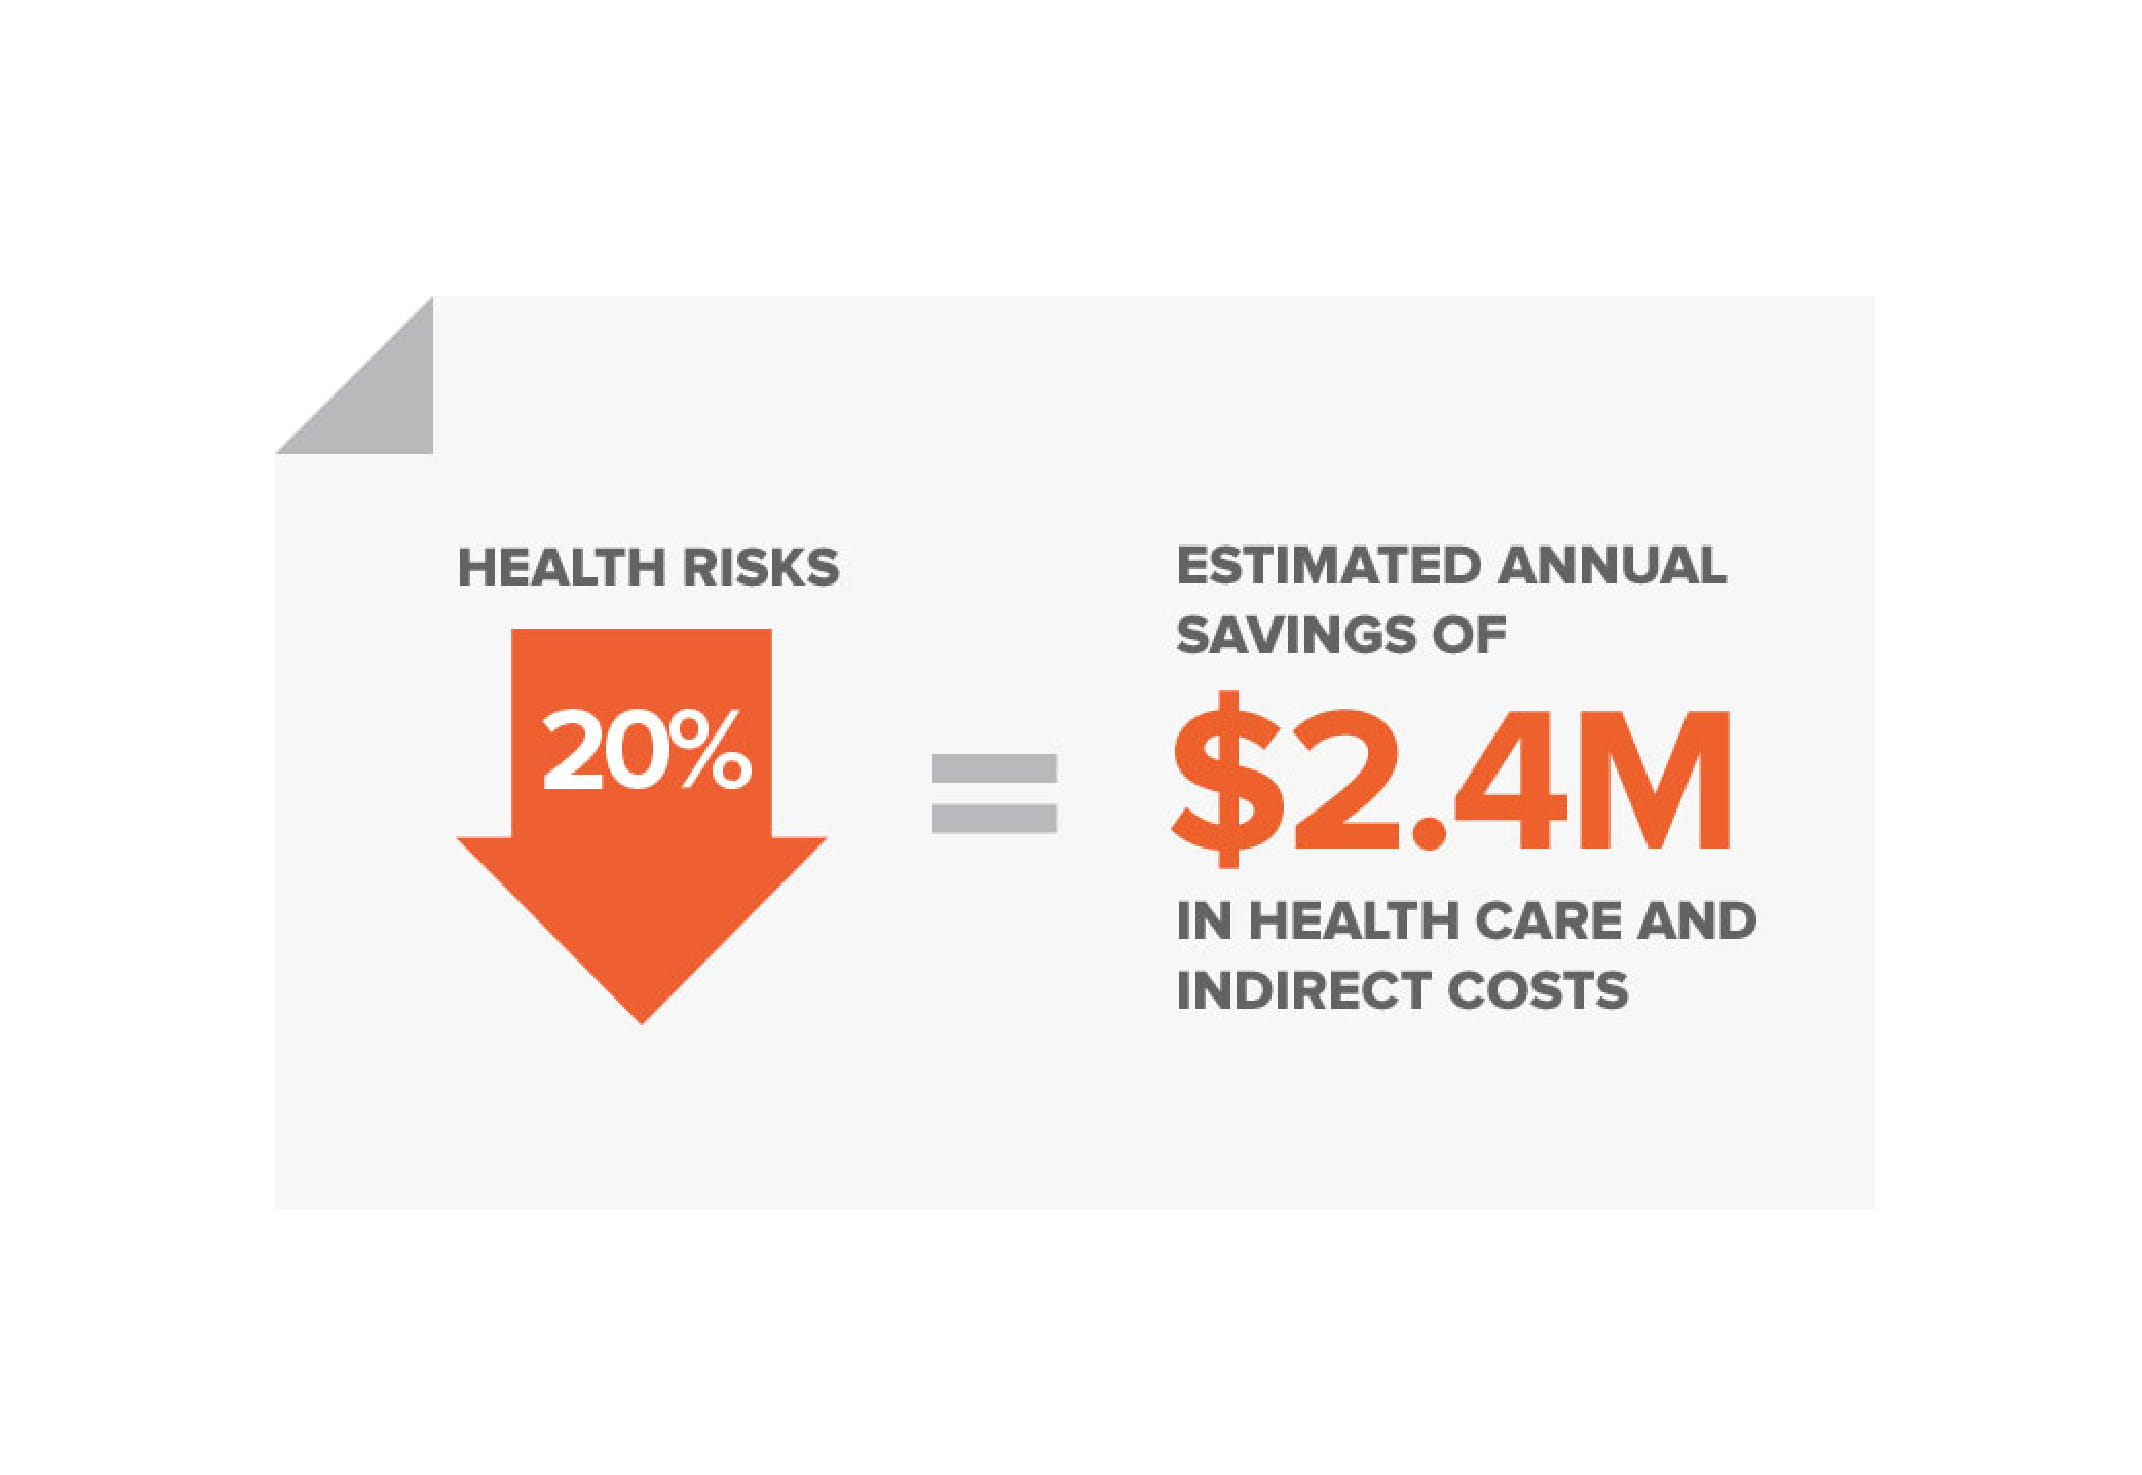 MORE THAN 13,000 EMPLOYEES, SPOUSES, AND RETIREES HAVE PARTICIPATED IN A+ HEALTH SINCE 2005.